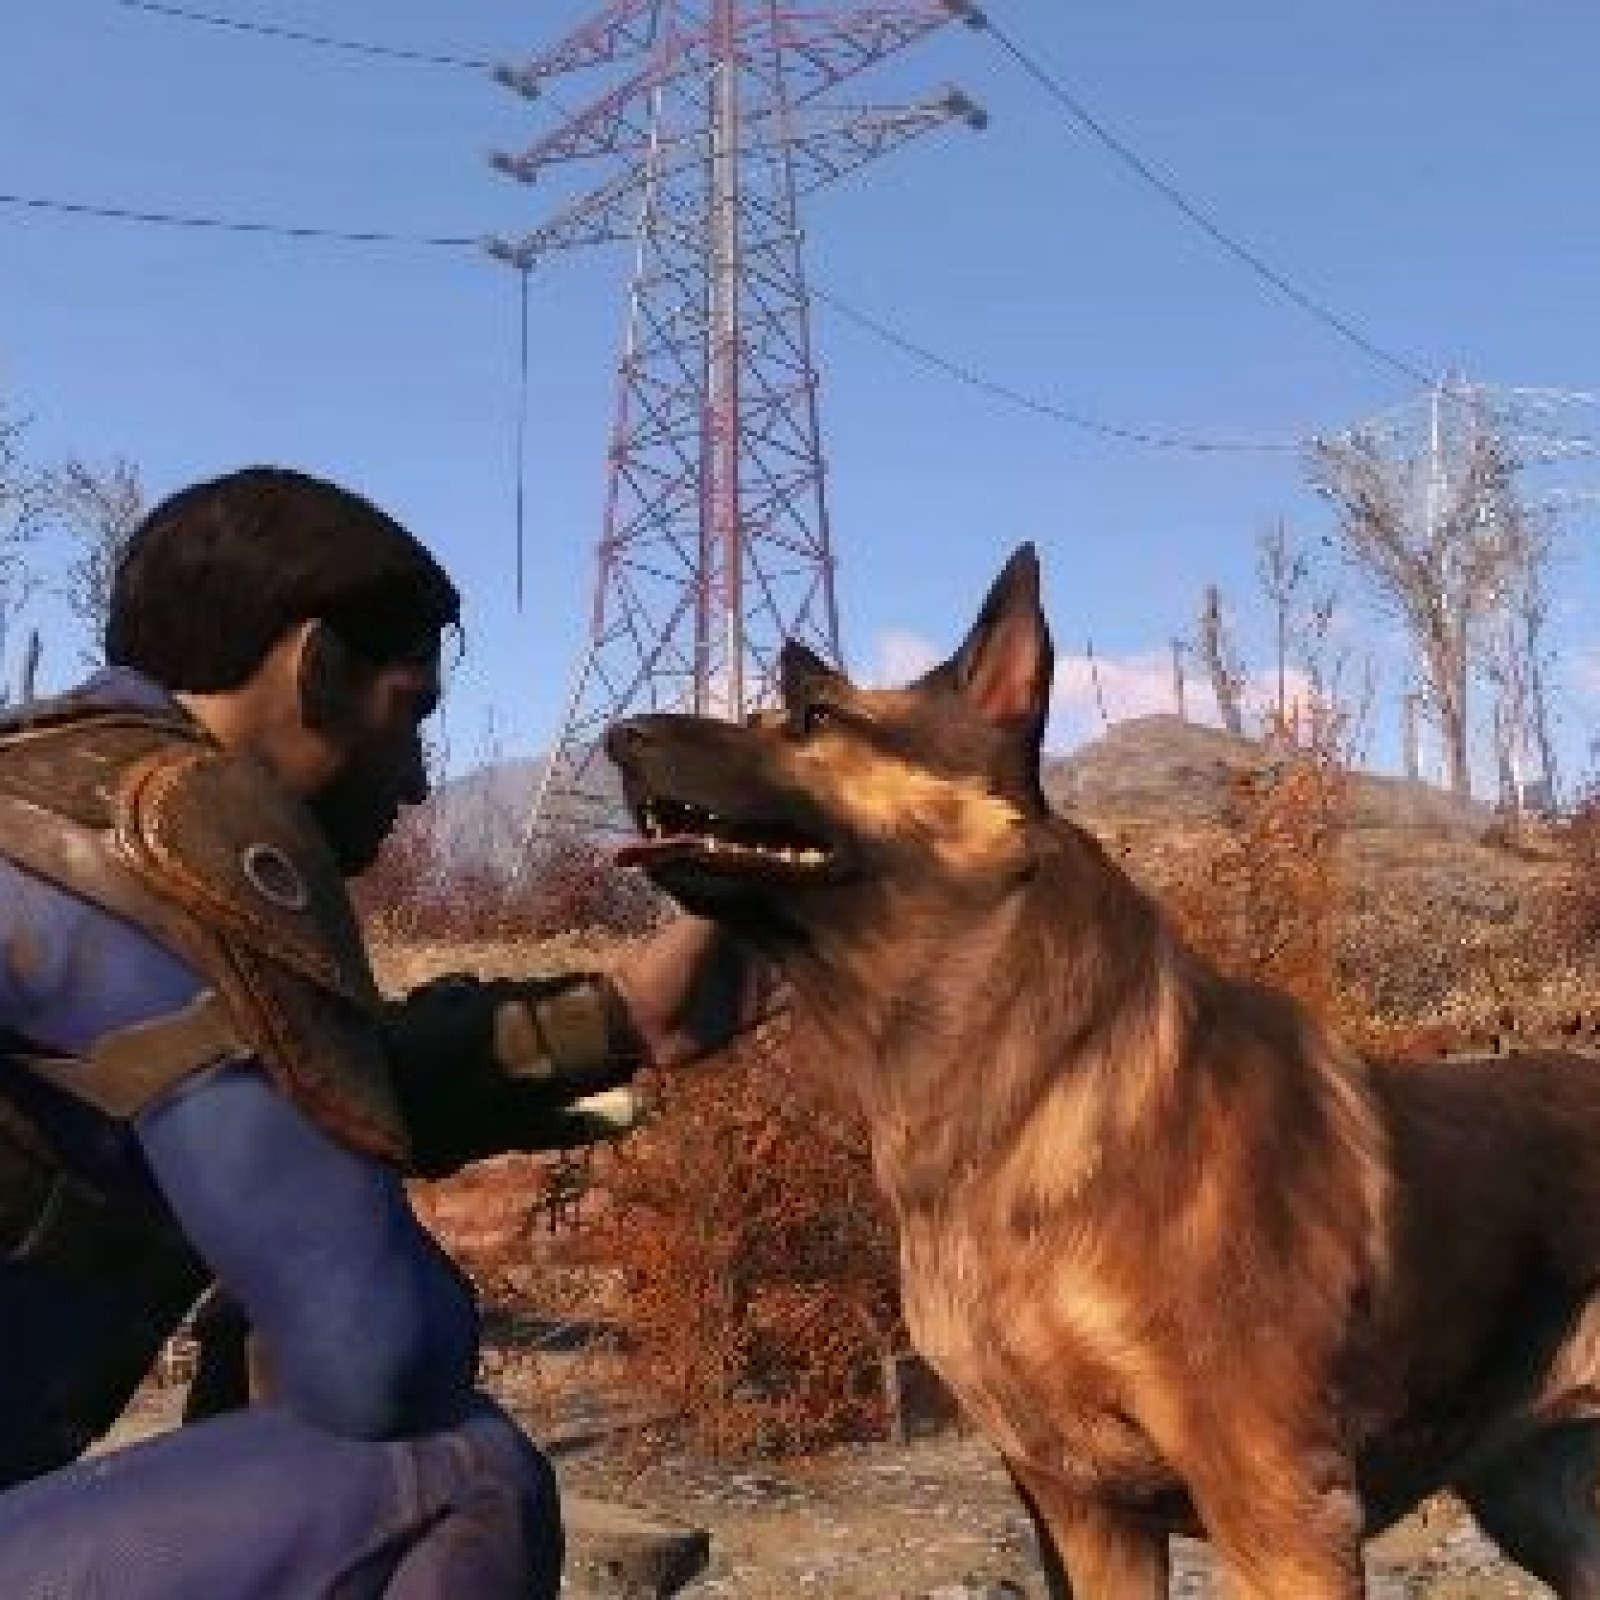 Fallout 4 Update 1 22: New Pet Creation Coming?